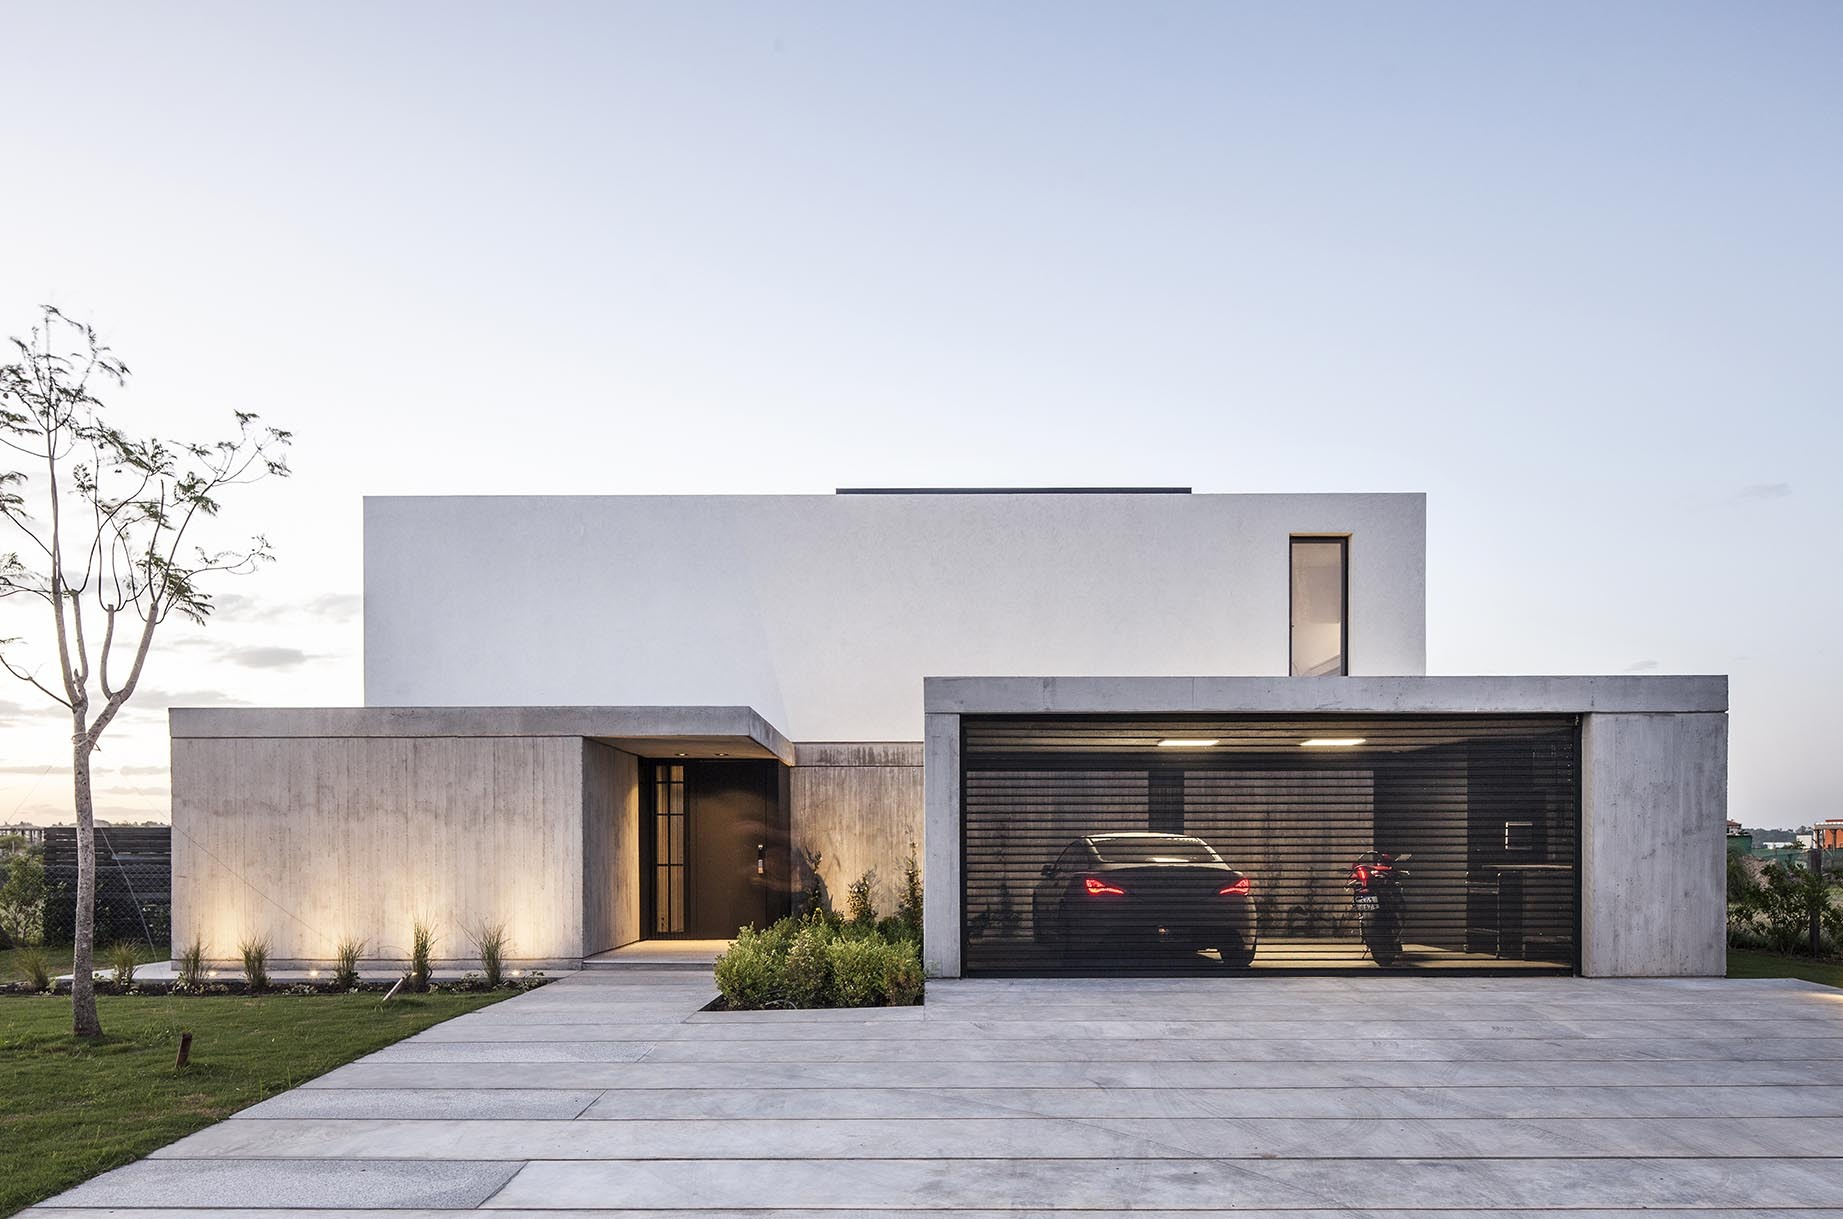 House n estudio gm arq archdaily for Casa minimalista uy